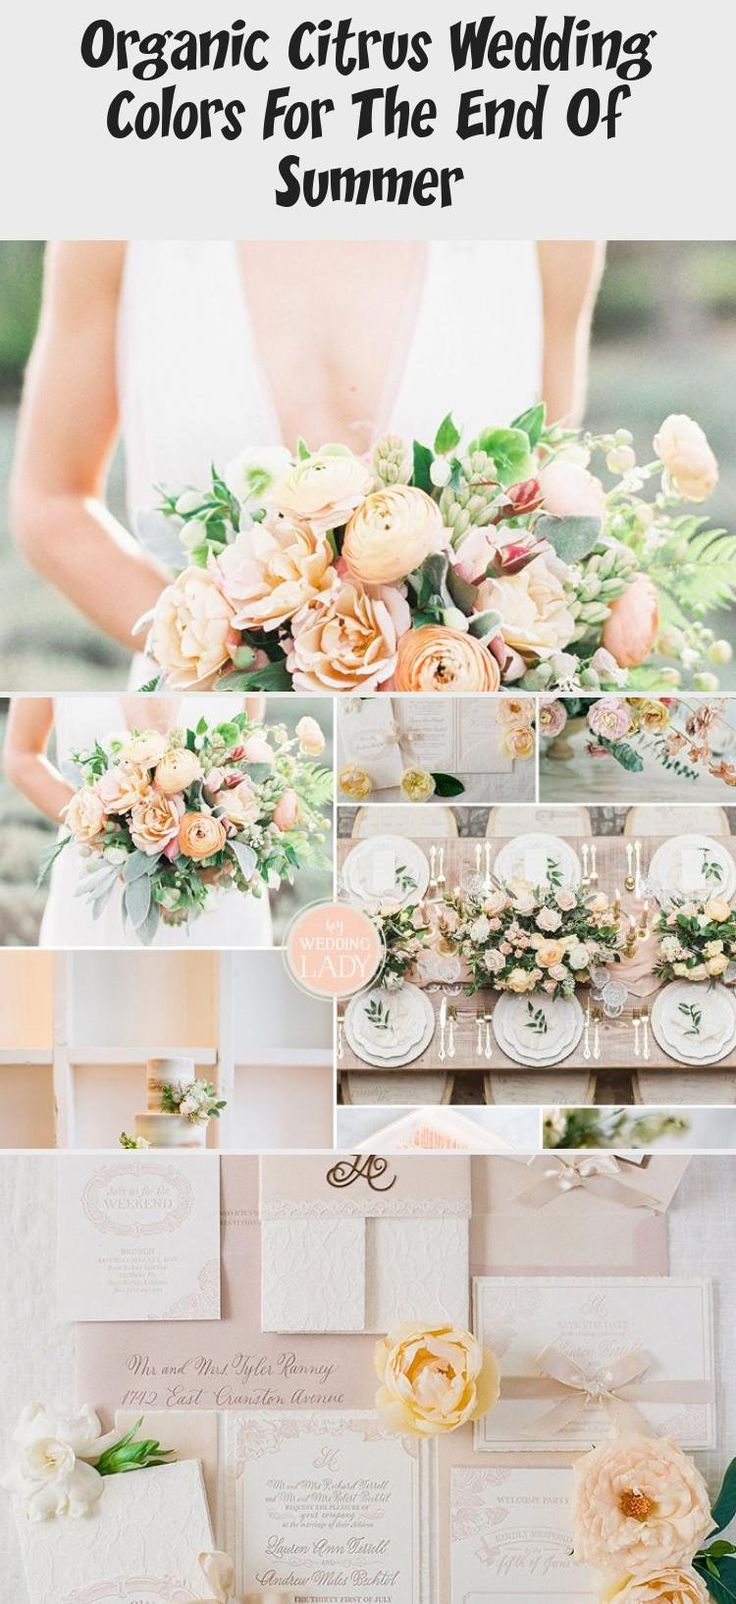 Organic Citrus Wedding Colors for the End of Summer